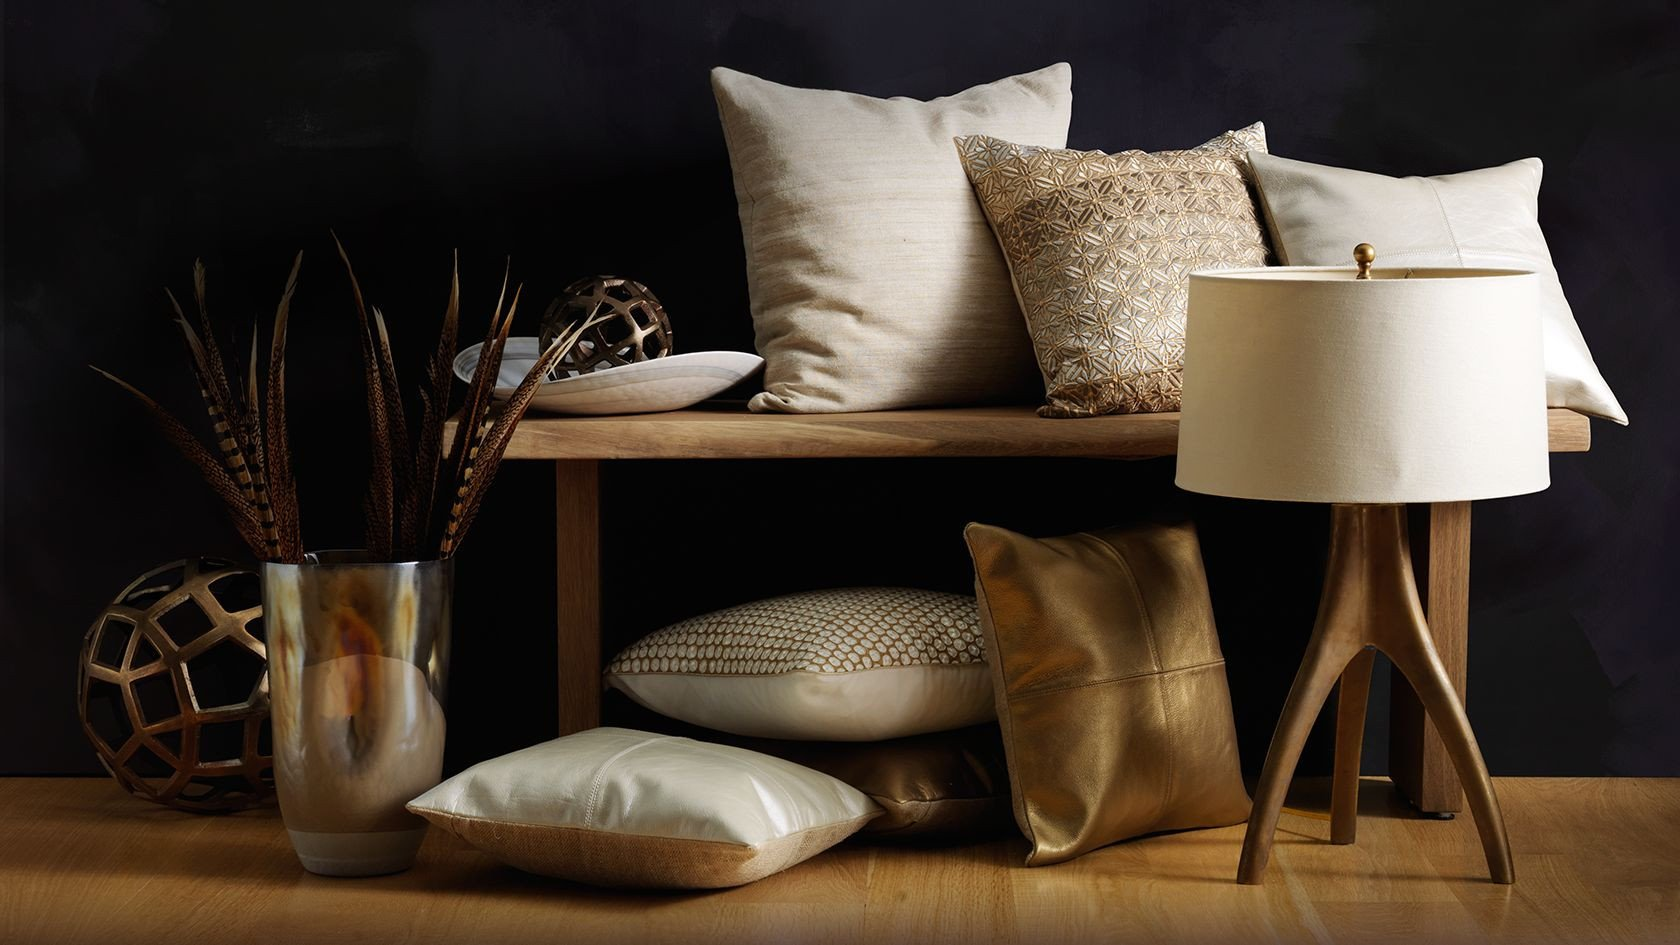 Crate and Barrel Home Decor Lovely Home Decor Accents and Accessories